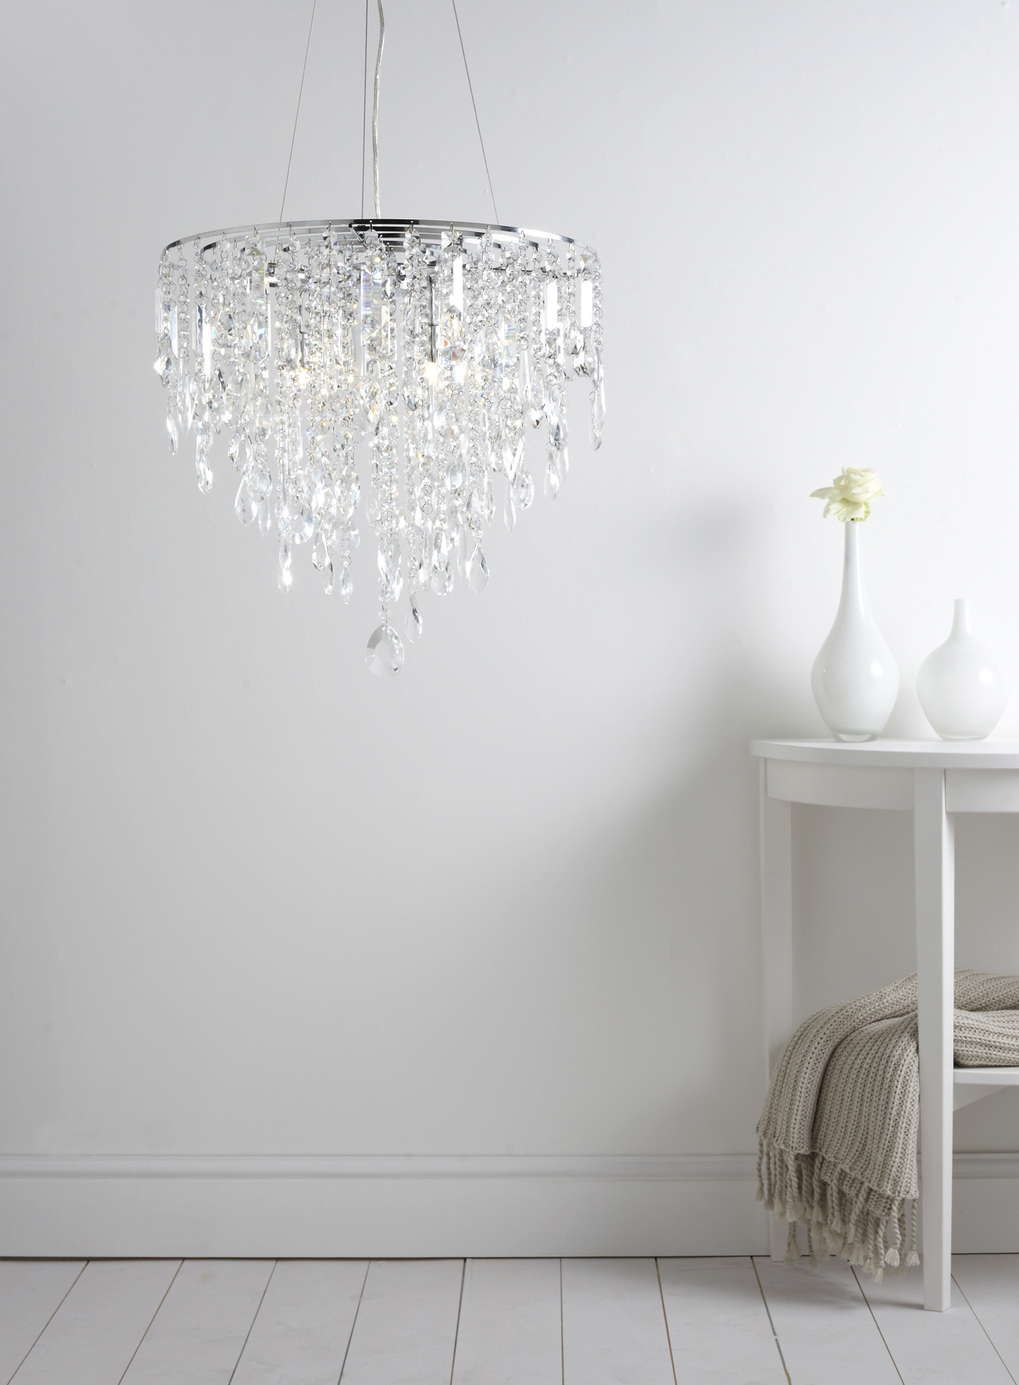 Pleasing 25 bathroom chandeliers bhs inspiration design of 27 bathroom chandeliers bhs nia pendant light bhs home pinterest bhs pendant arubaitofo Image collections